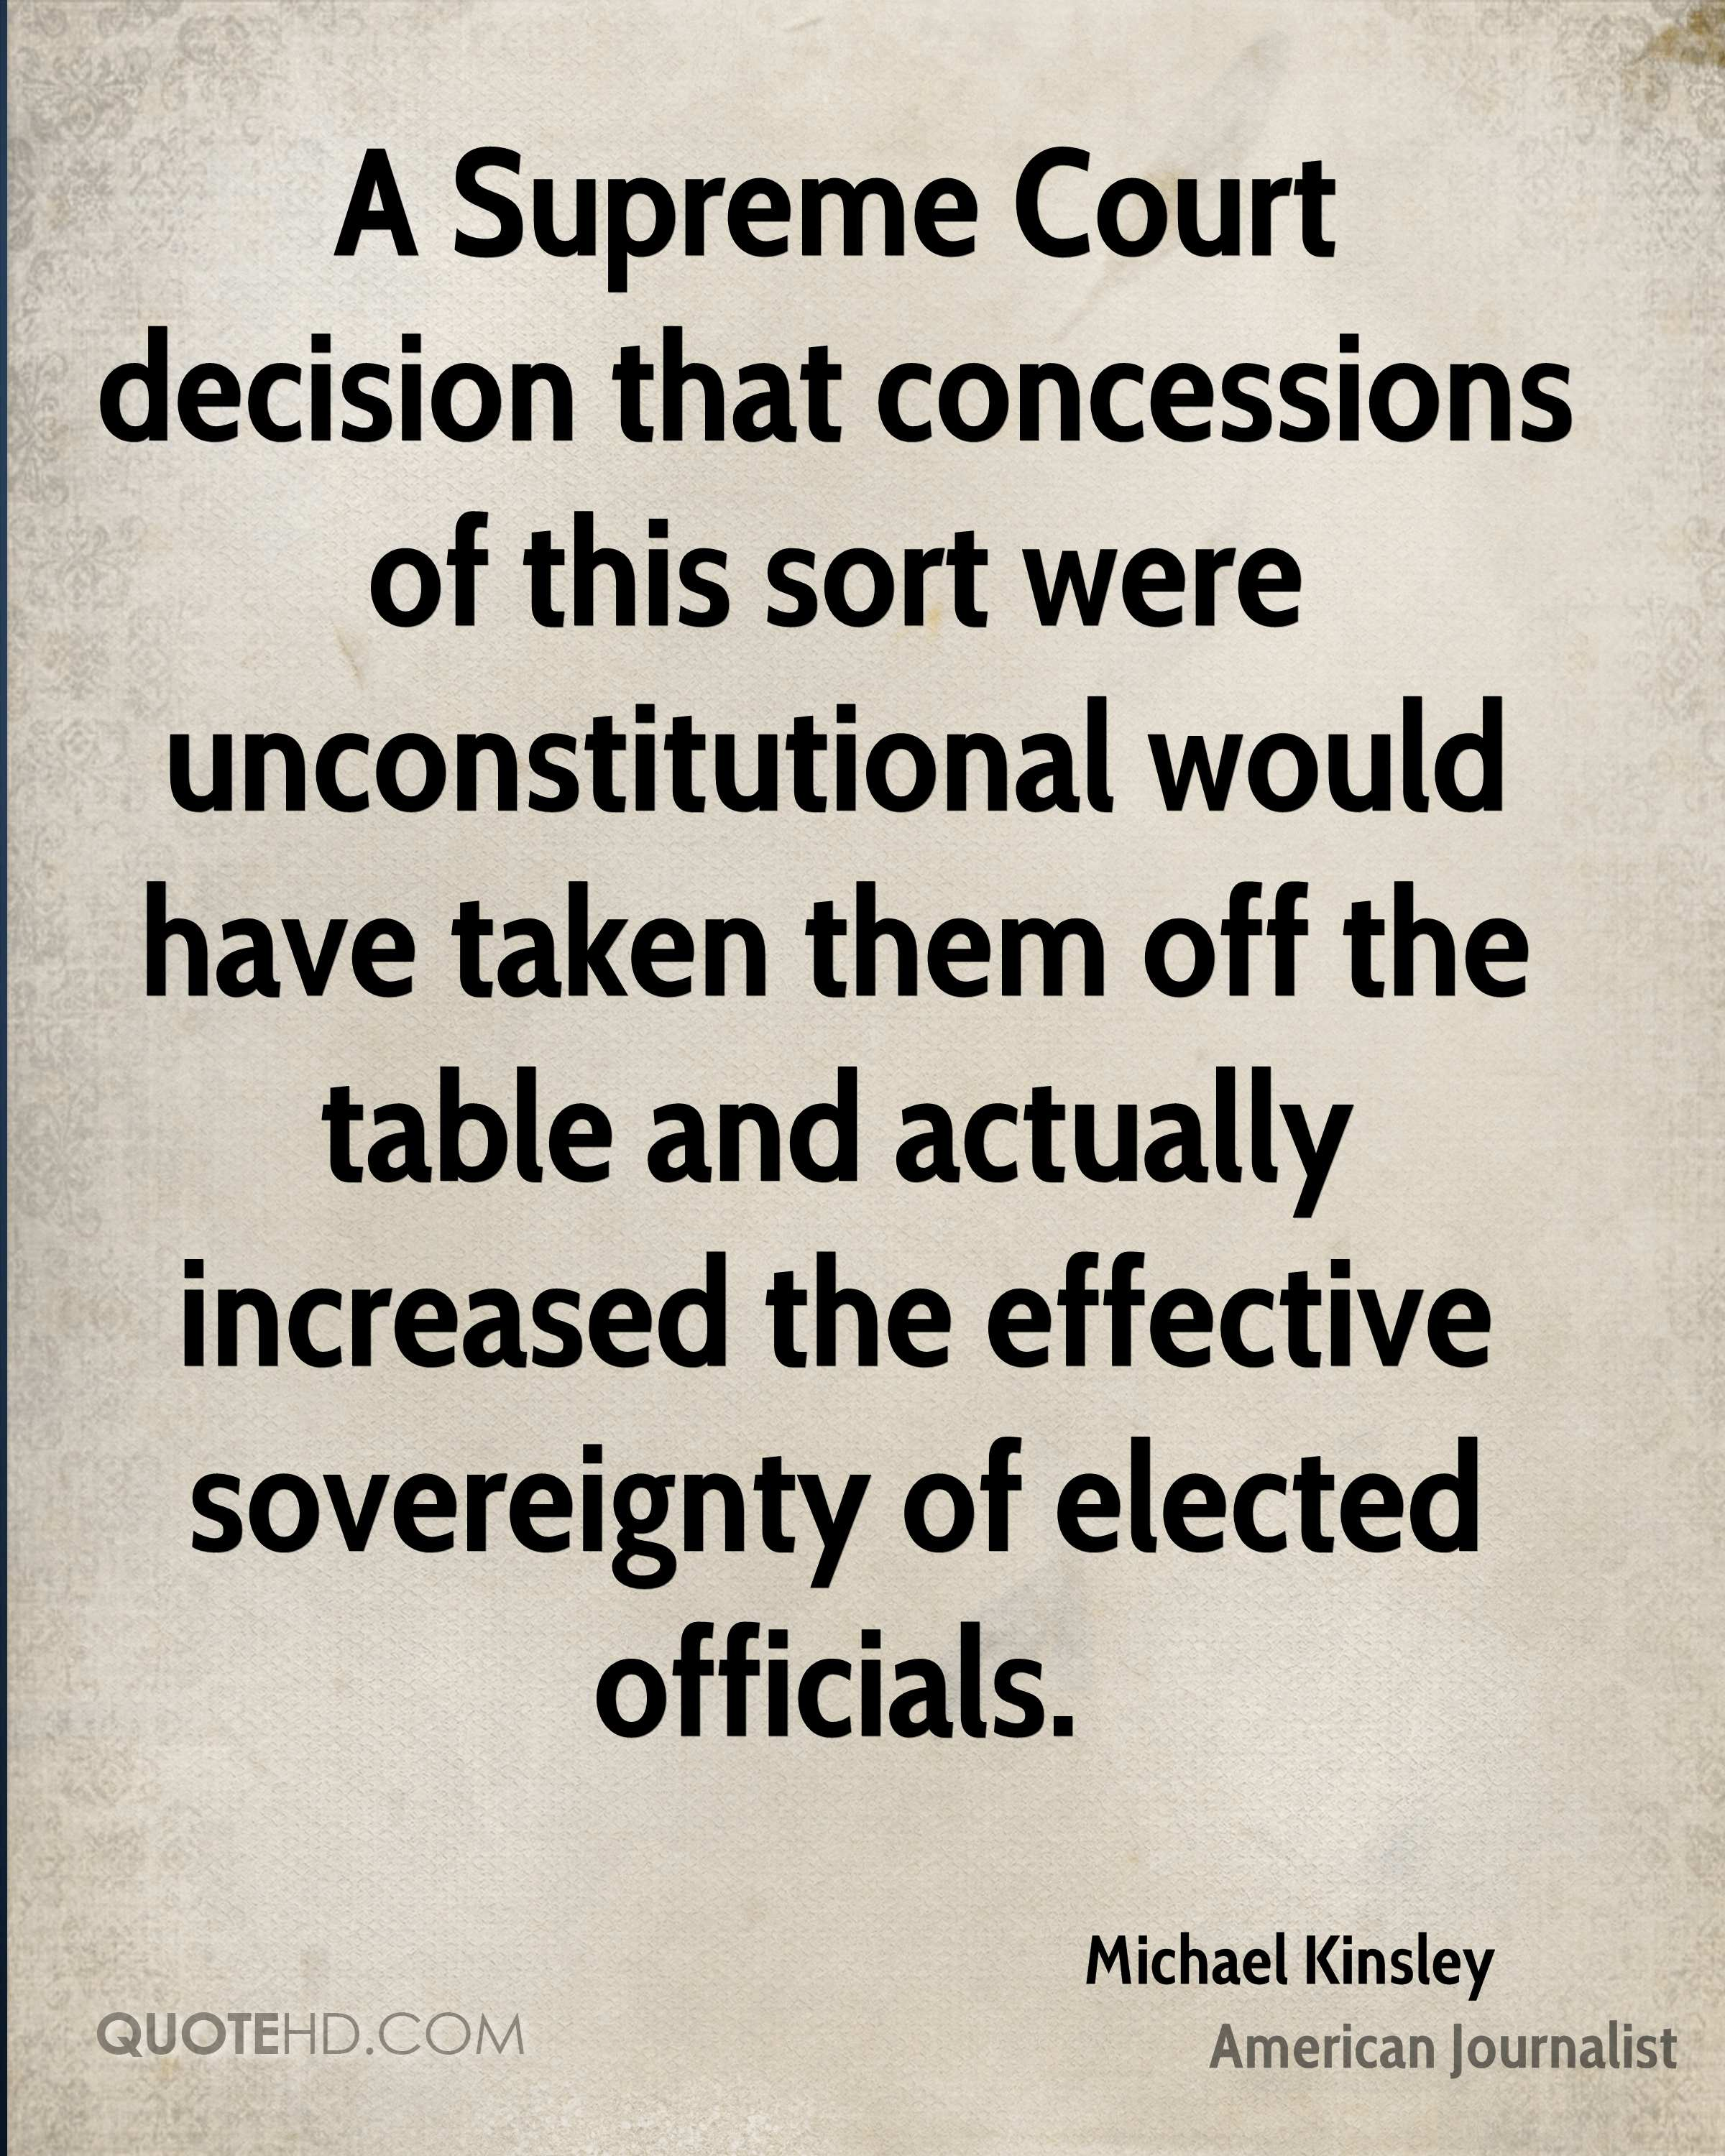 A Supreme Court decision that concessions of this sort were unconstitutional would have taken them off the table and actually increased the effective sovereignty of elected officials.